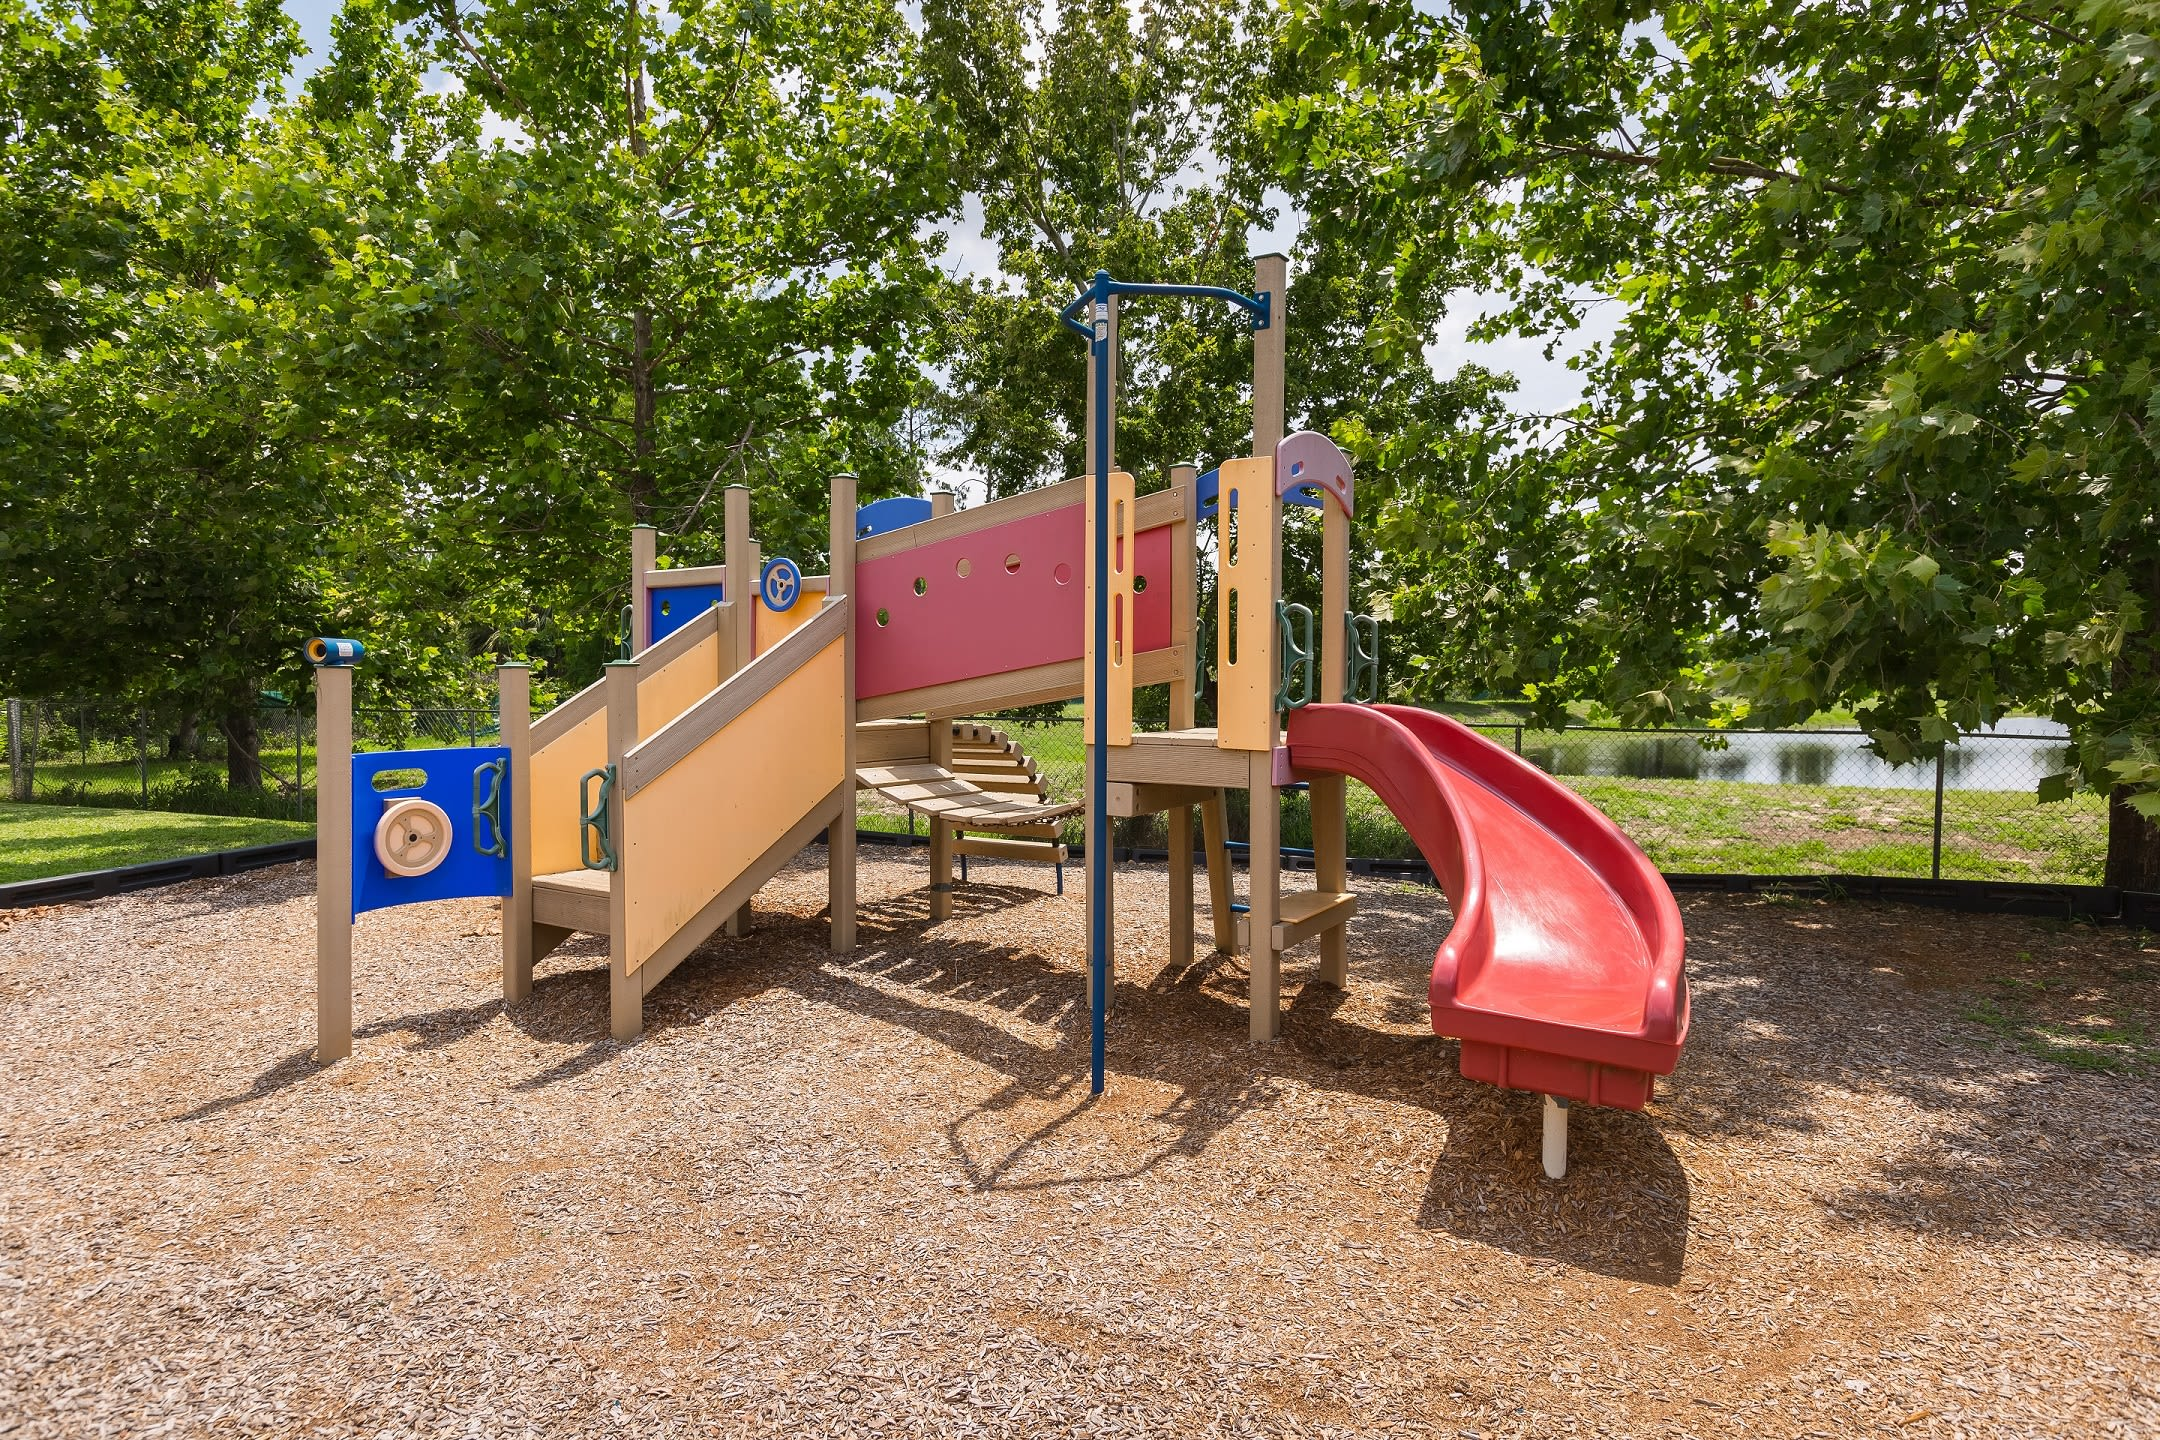 Plain playground at The Aspect in Kissimmee, Florida